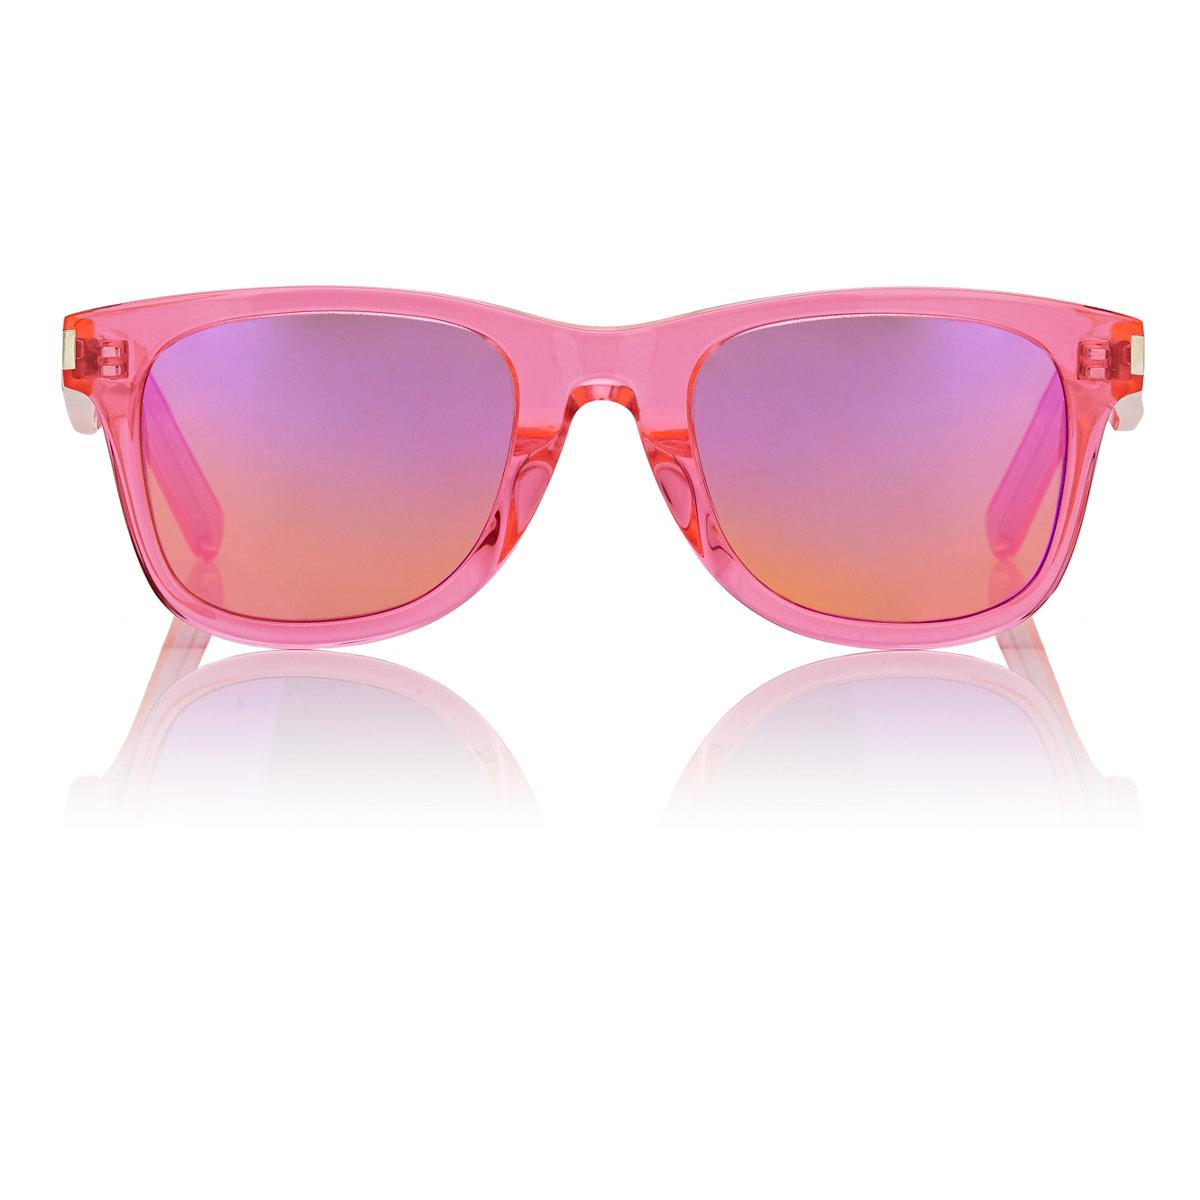 94139e6066 Lyst - Saint Laurent Sl51 Surf Sunglasses in Pink